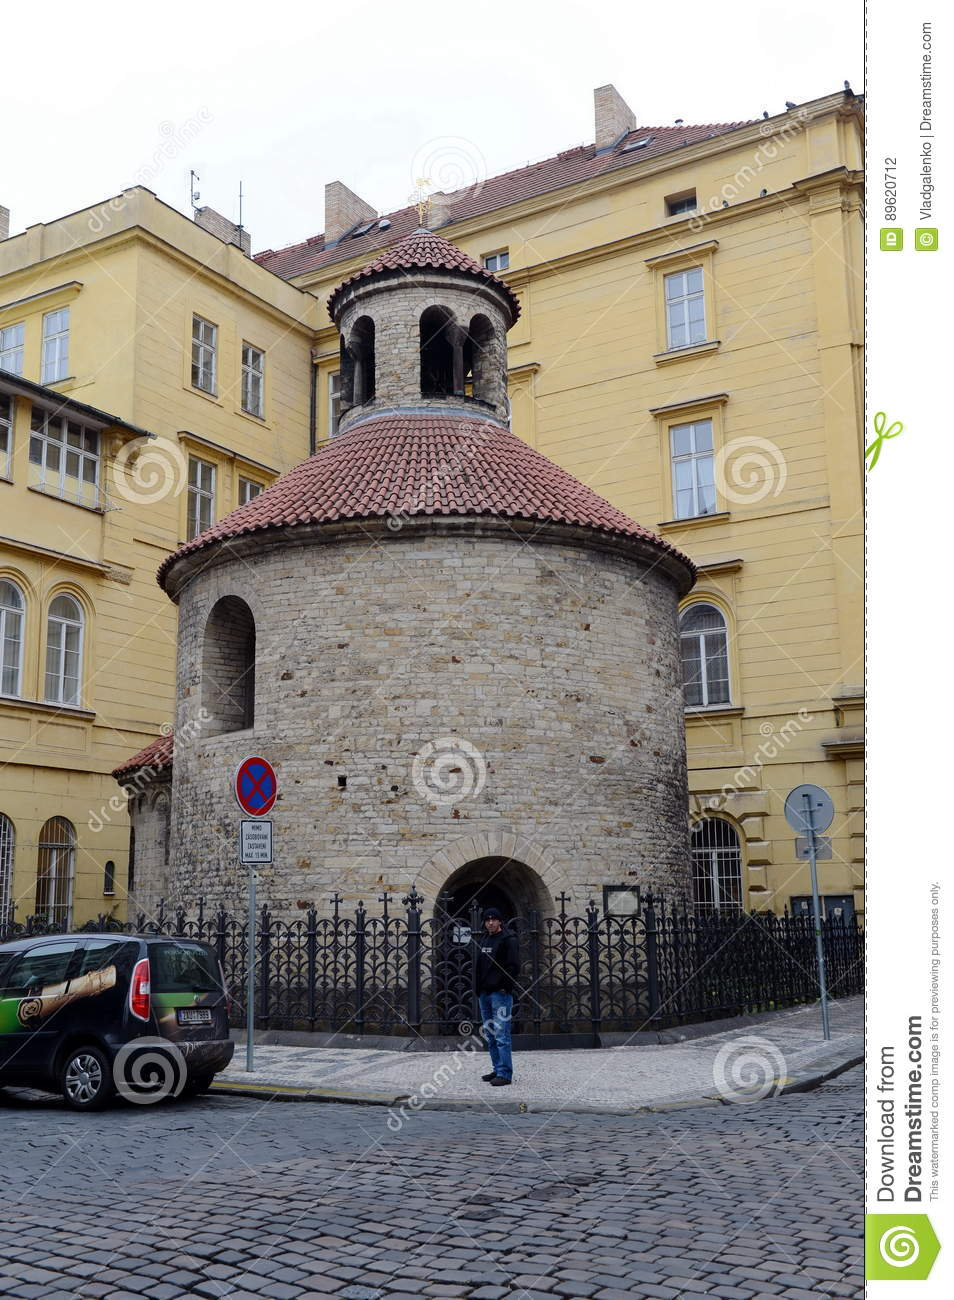 Romanesque rotunda is one of Prague's oldest buildings, starting out as parish church in about 1100.